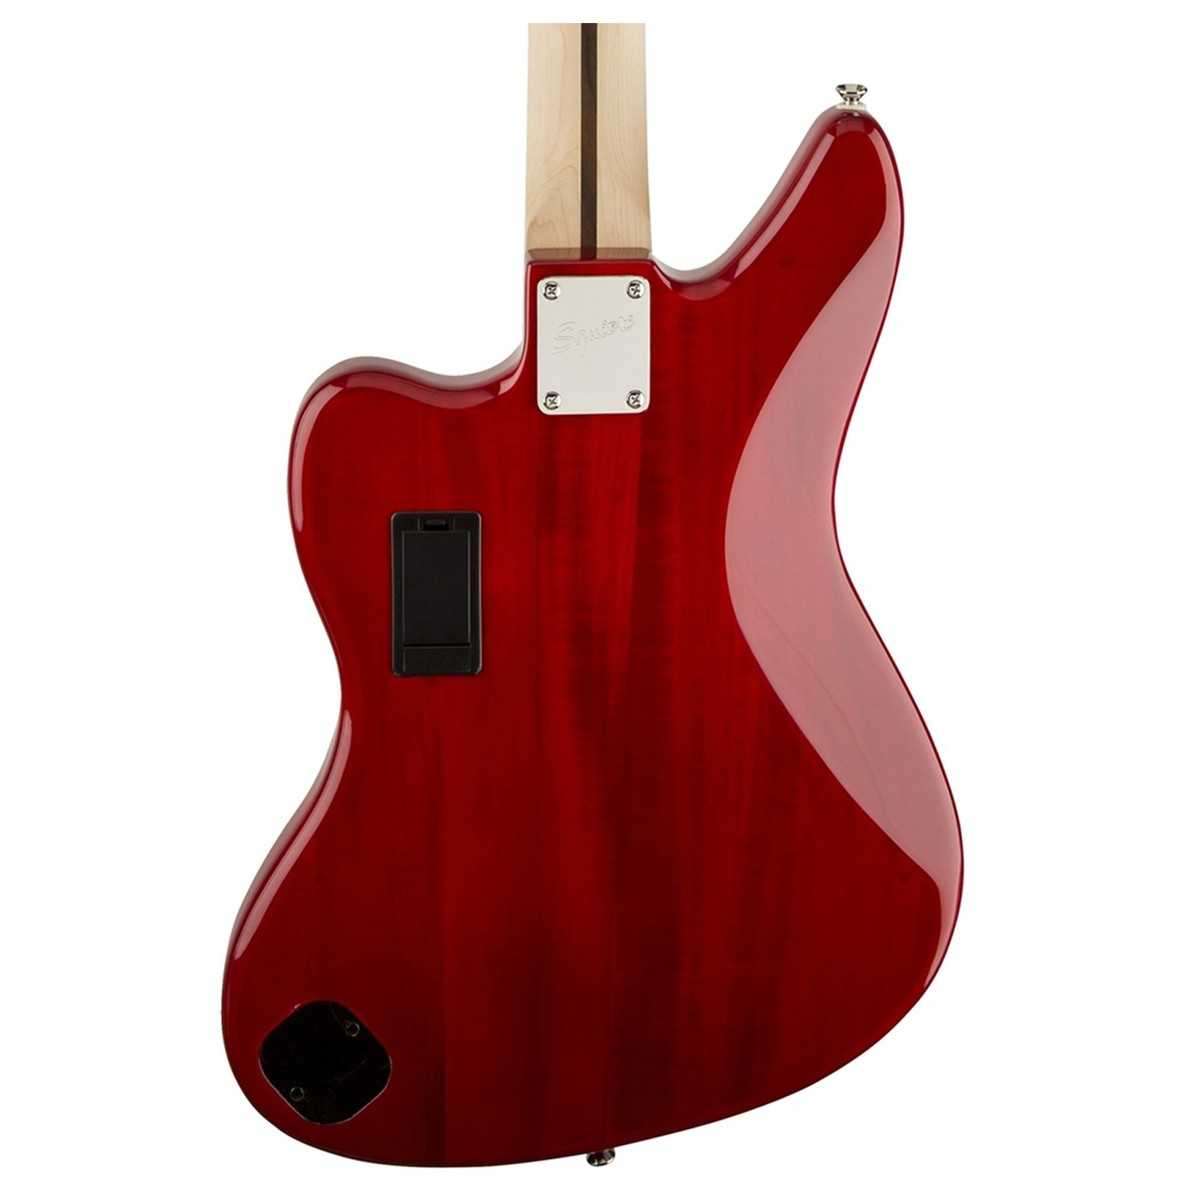 hight resolution of  squier vintage modified jaguar bass special crimson red transparent rear close up view